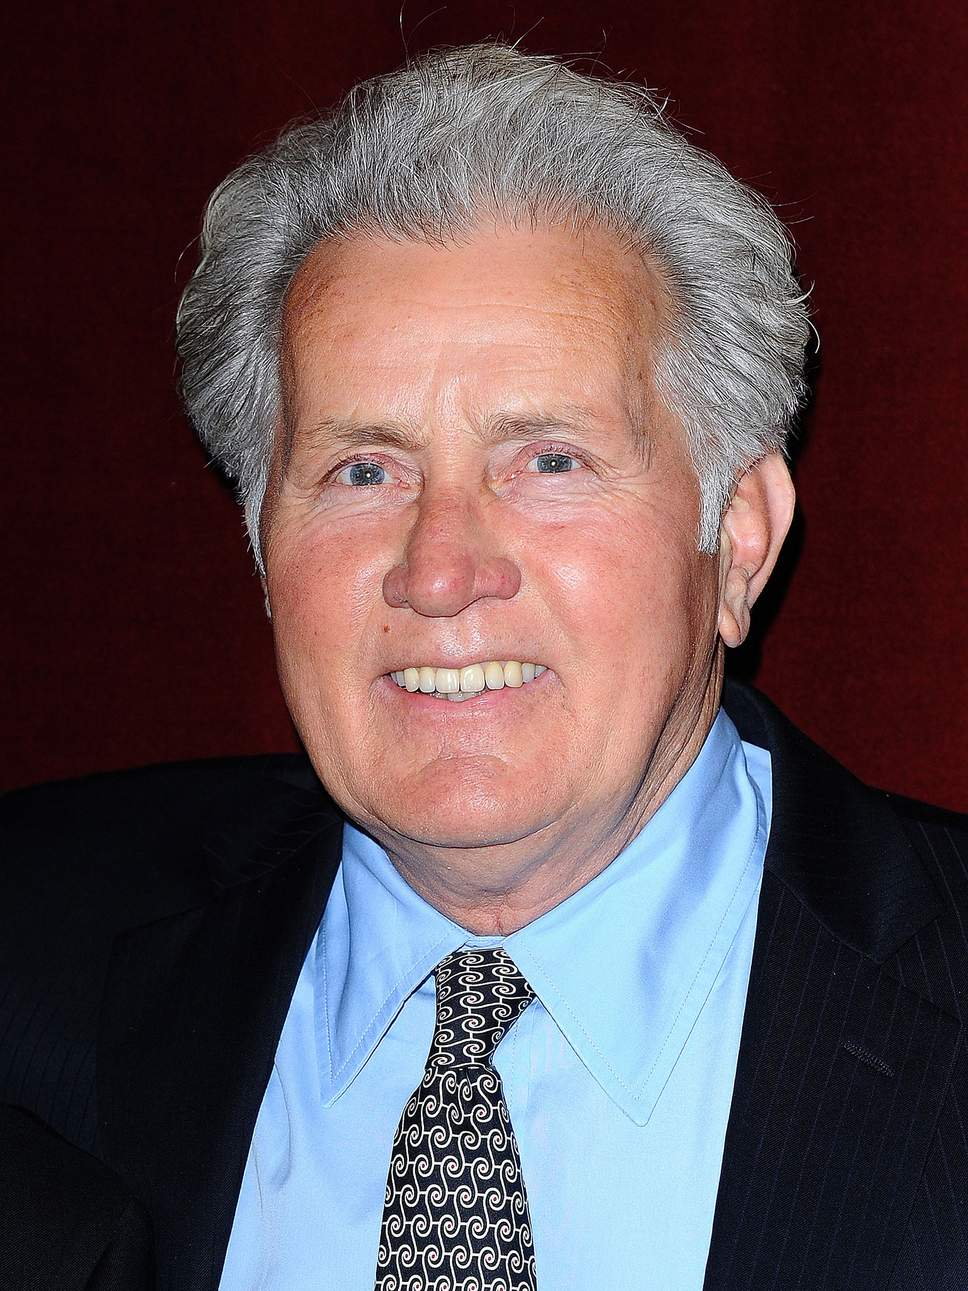 martin sheen wifemartin sheen young, martin sheen mass effect, martin sheen the way, martin sheen voice, martin sheen height, martin sheen charlie sheen, martin sheen voice acting, martin sheen tony blair, martin sheen biography, martin sheen bio, martin sheen putting on a jacket, martin sheen filmography, martin sheen net worth, martin sheen western films, martin sheen wife, martin sheen on marlon brando, martin sheen emilio estevez, martin sheen masters, martin sheen filmjei, martin sheen personality